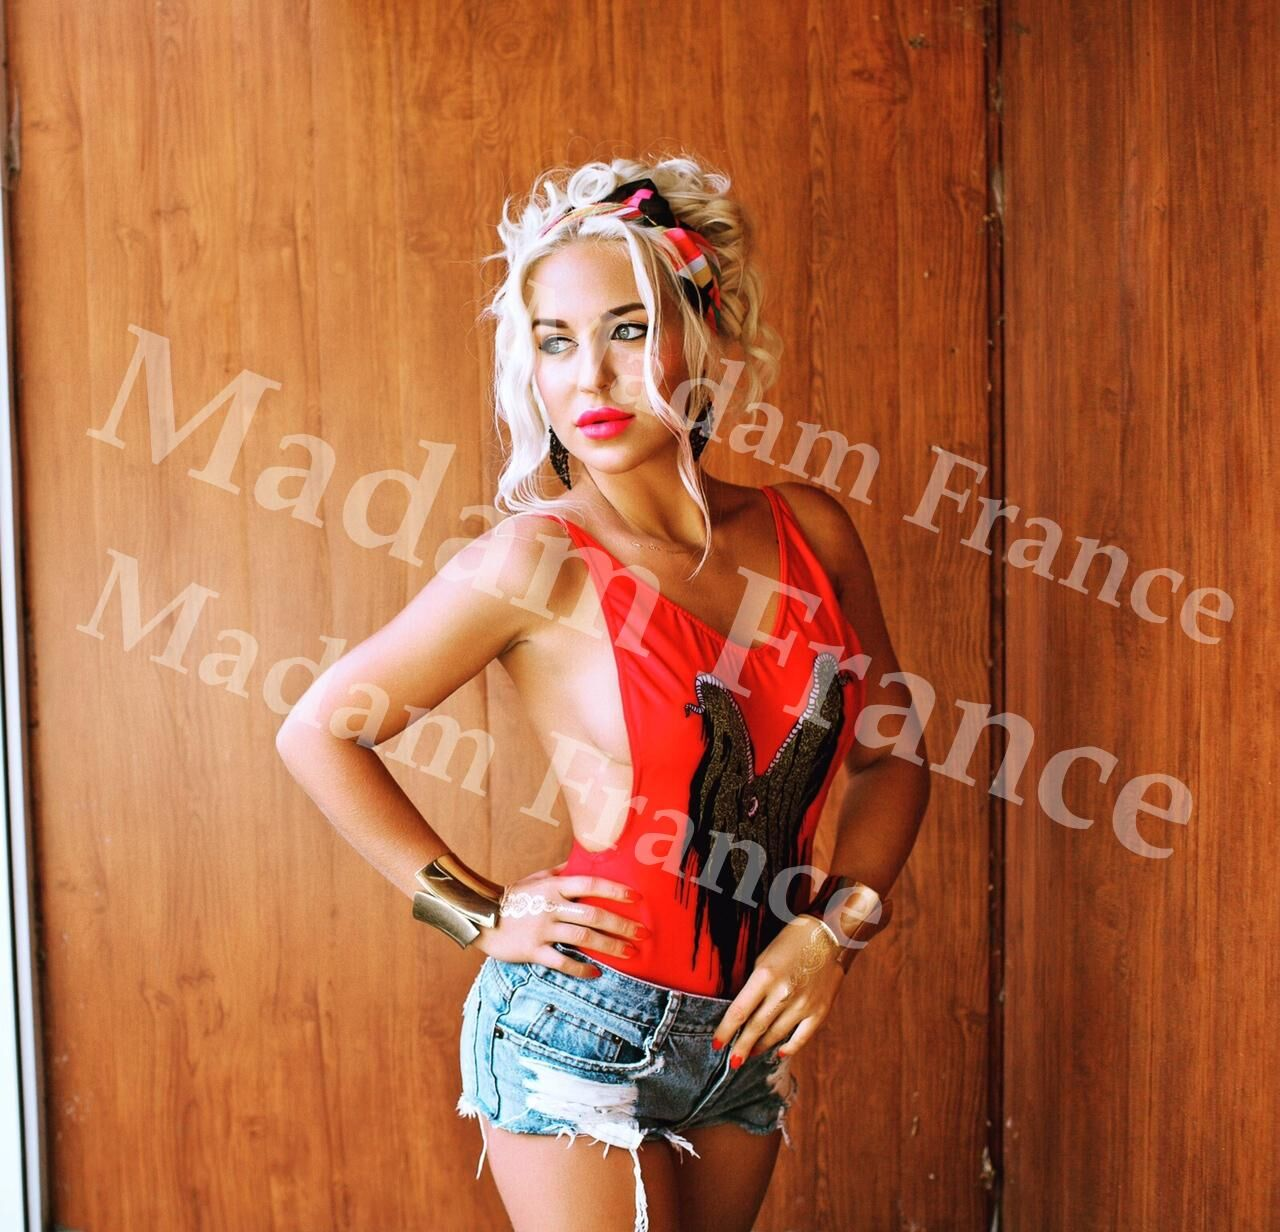 Isobel model on Madam France escort service